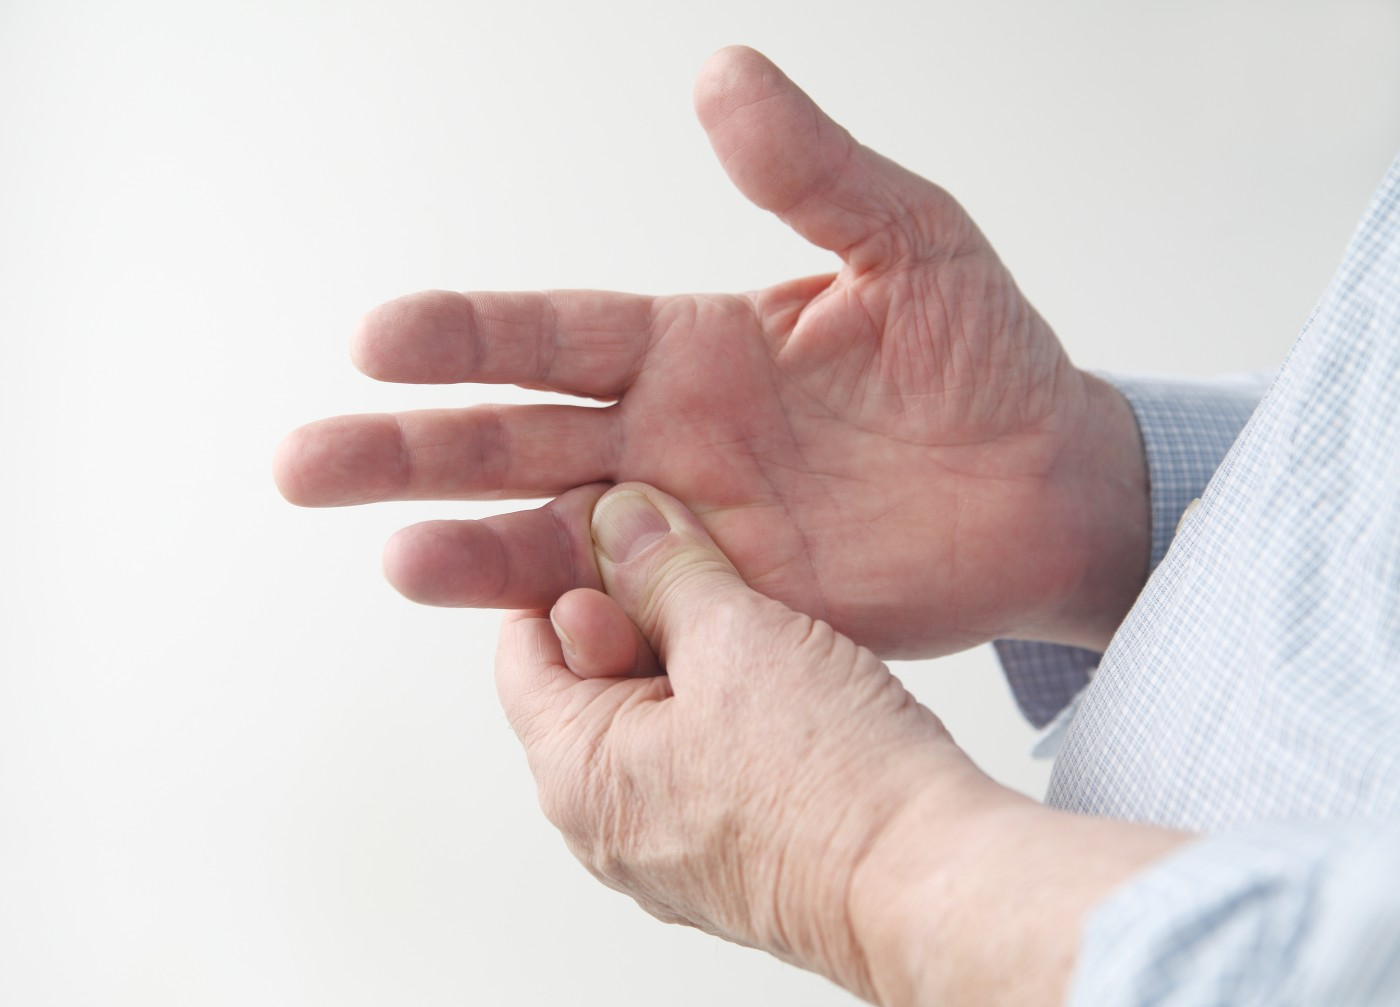 Botulinum Toxin Has Variable Effectiveness in Patients with Scleroderma-associated Raynaud's